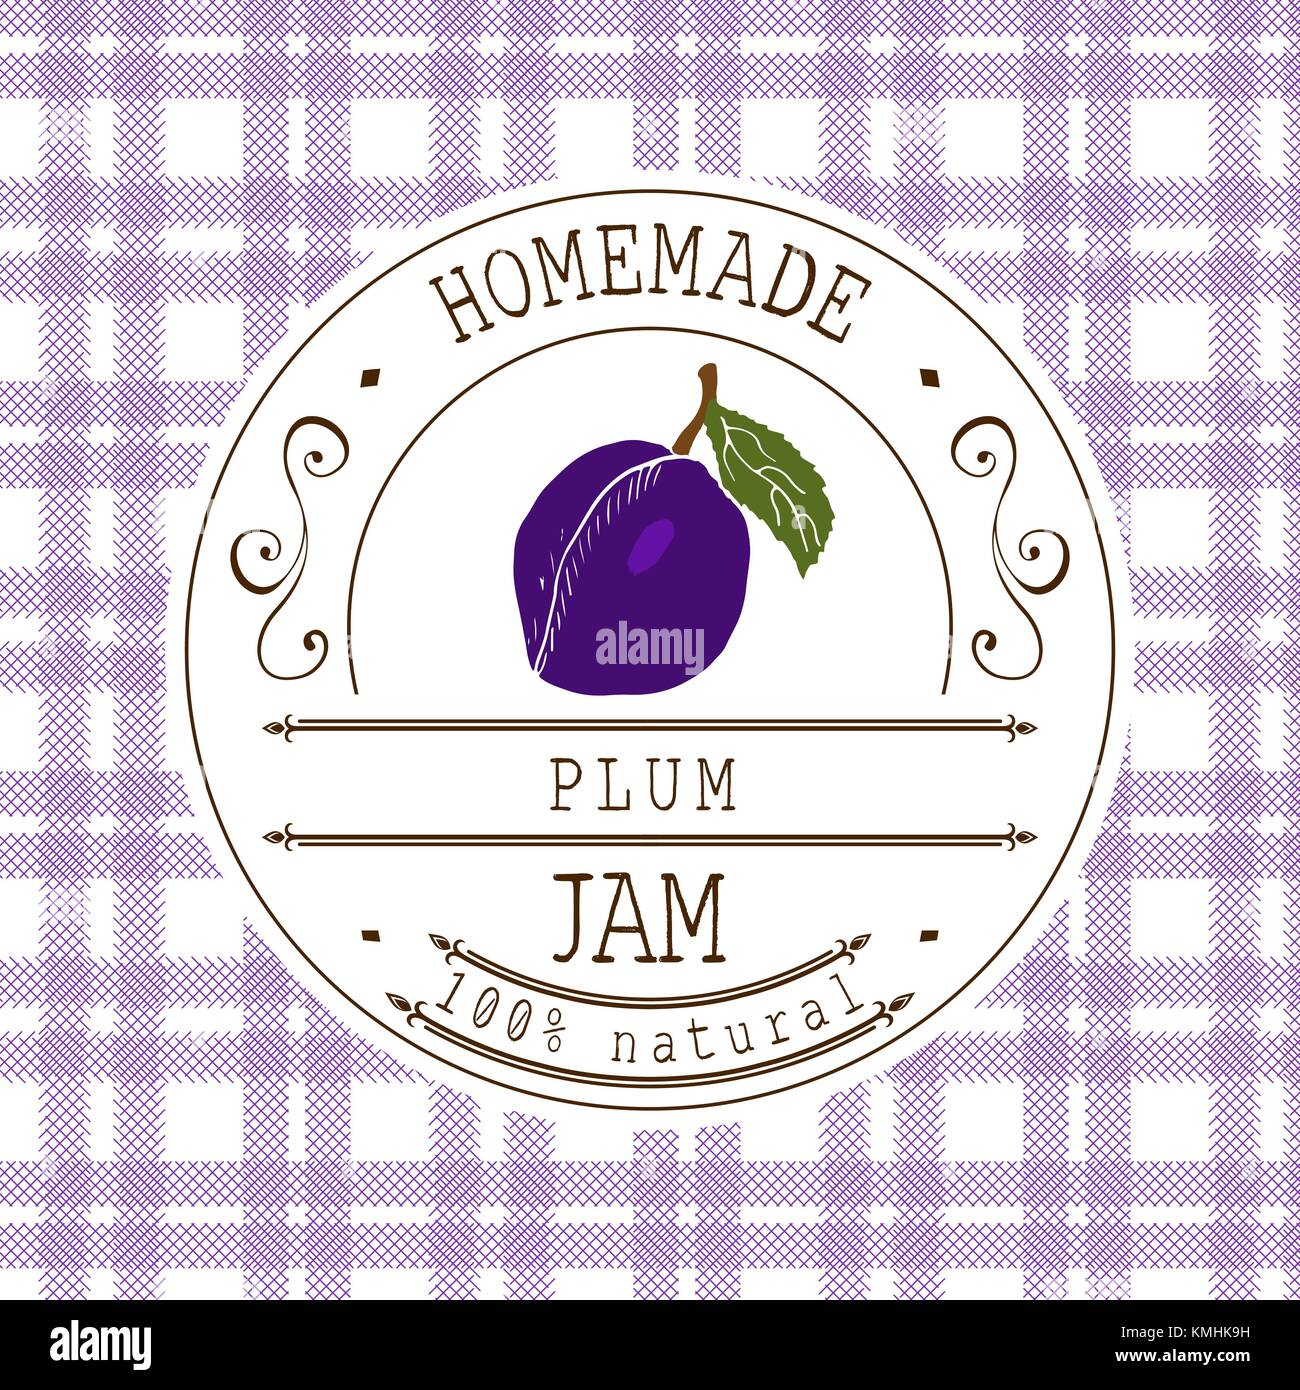 jam label design template for plum dessert product with.html